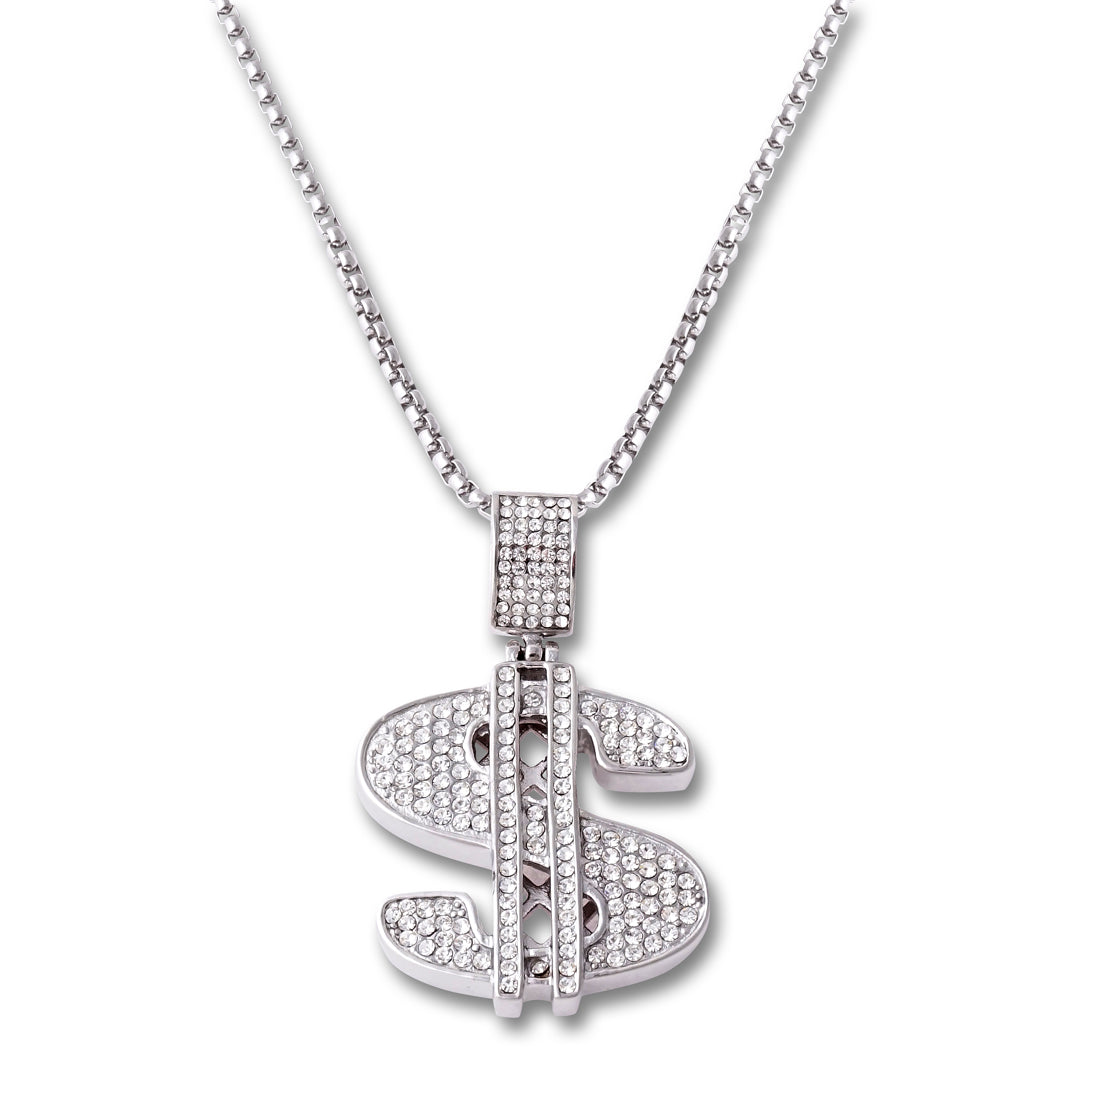 SILVER Dollar Sign Pendant Necklace - URBANCREWS